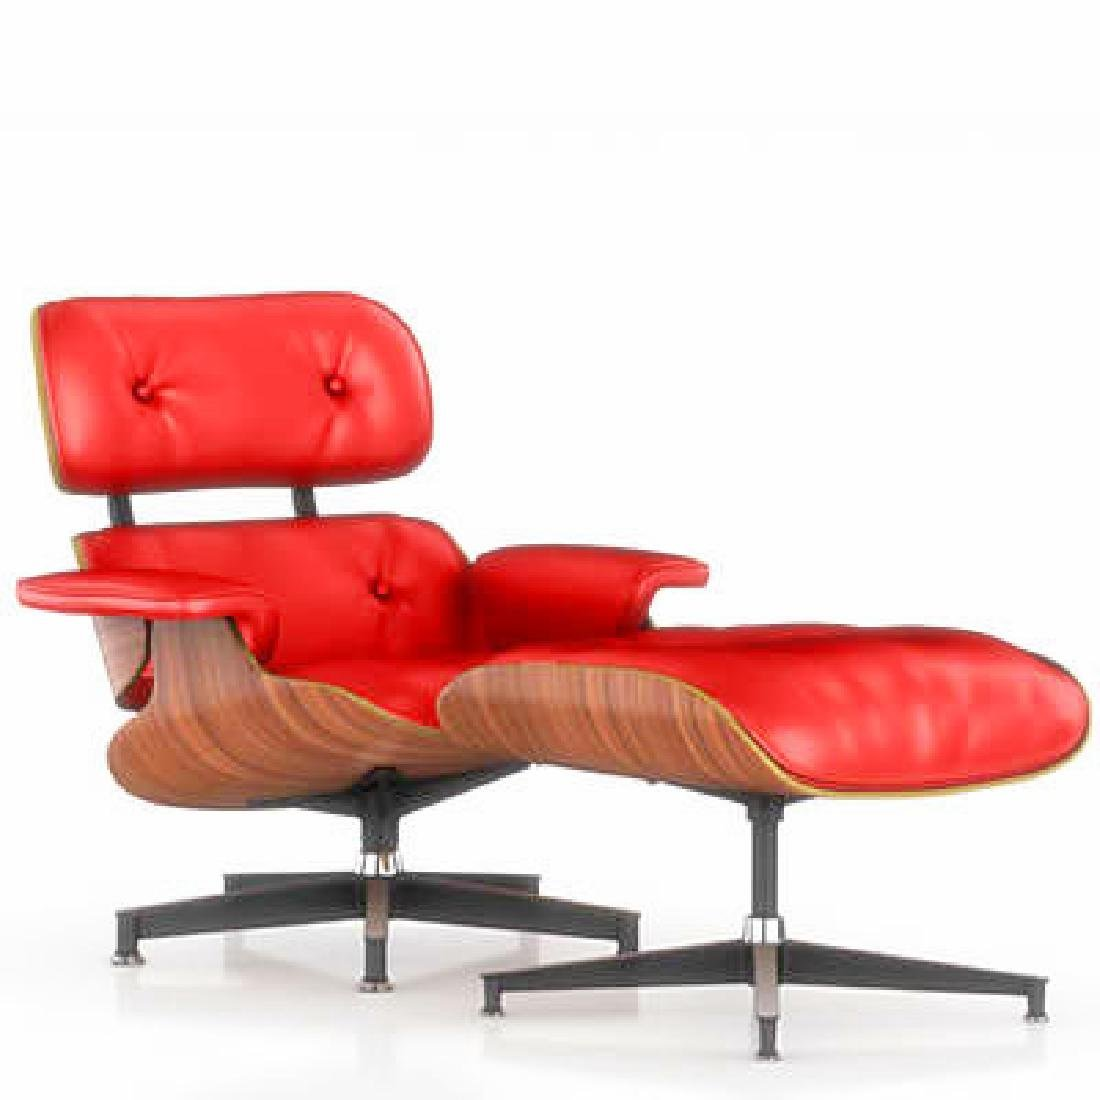 Herman Miller Royal Red Lounge Chair & Ottoman